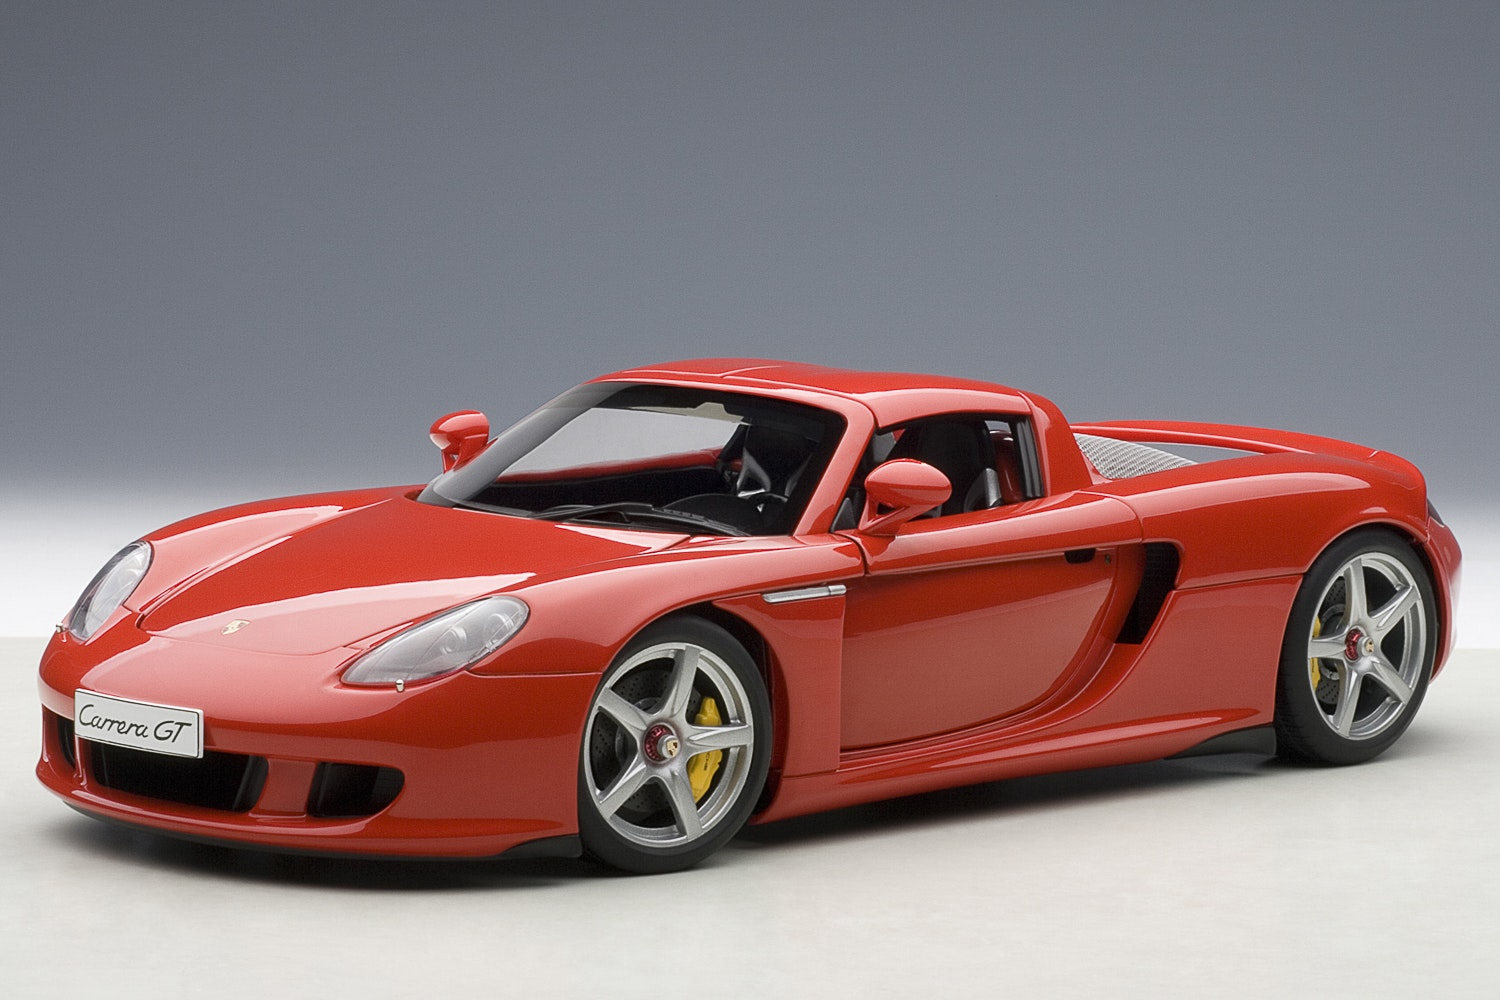 Porsche Carrera GT, Red